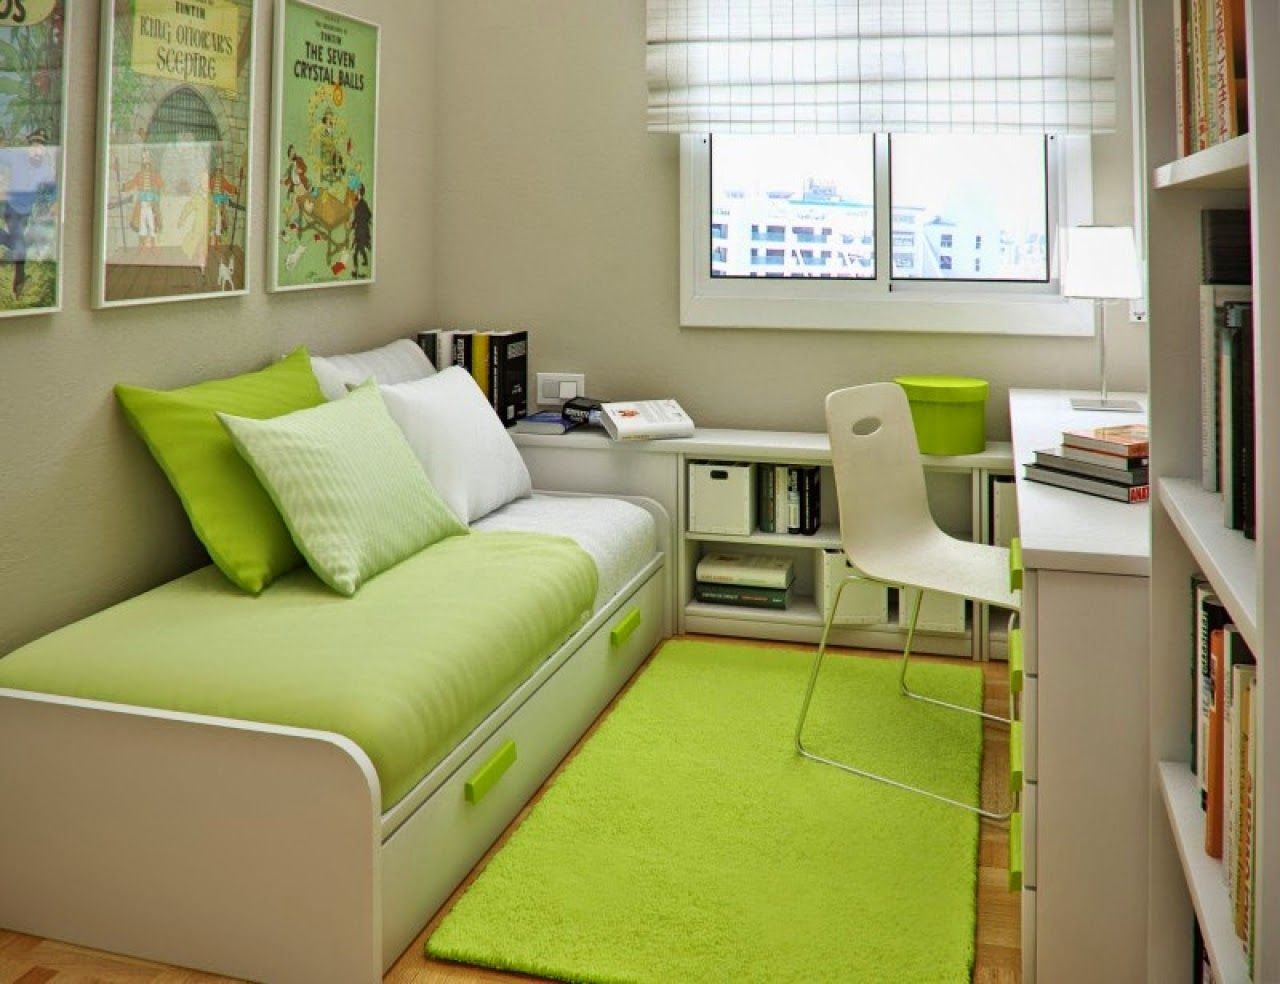 Image result for how to use small spaces efficiently | Home decor ...